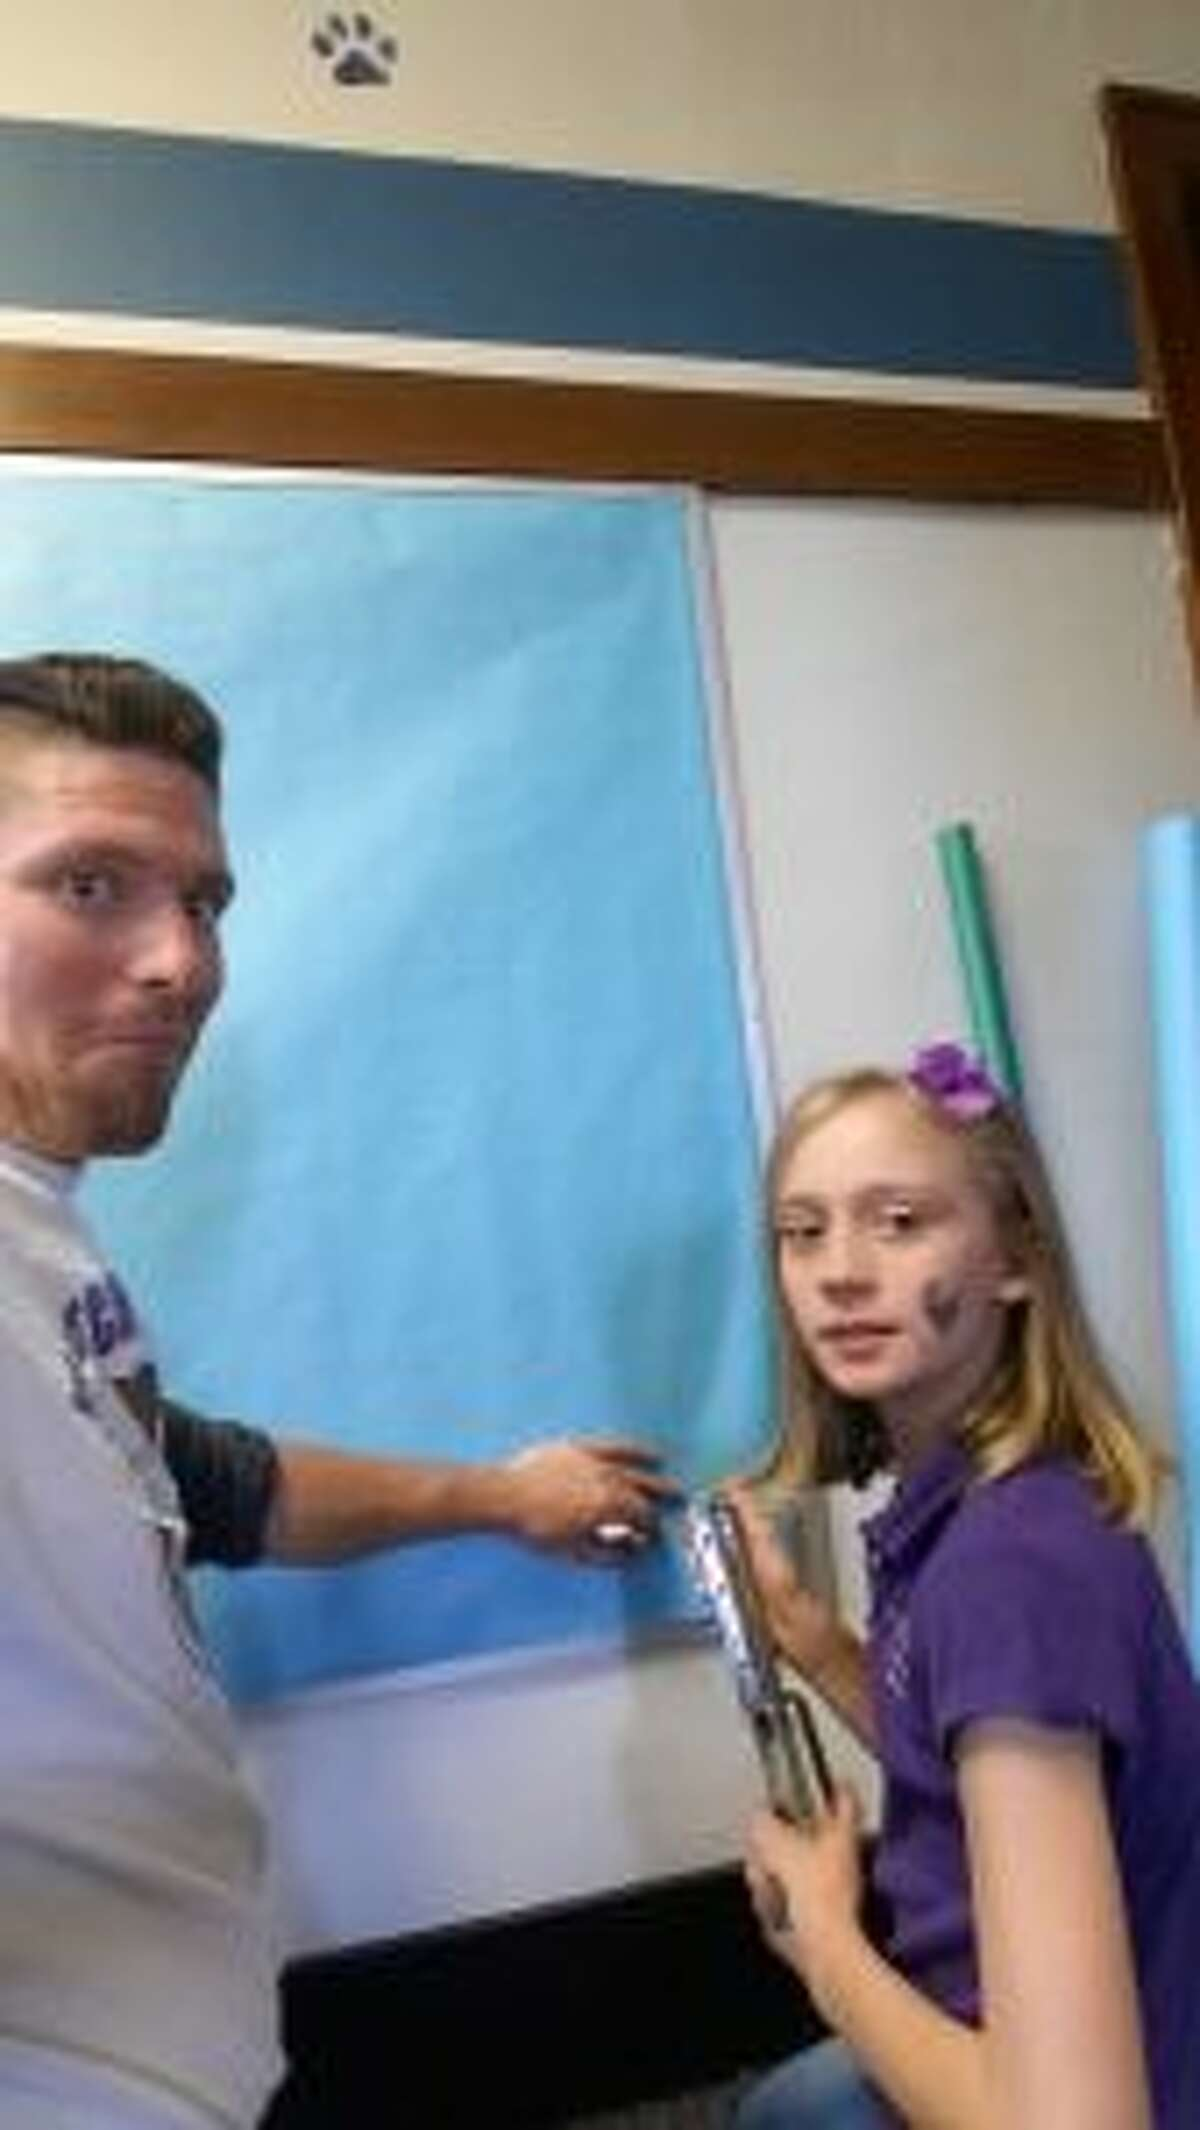 HELPING HAND: McNally works with his daughter, Zoe, putting a new background on one of the hallway bulletin boards.